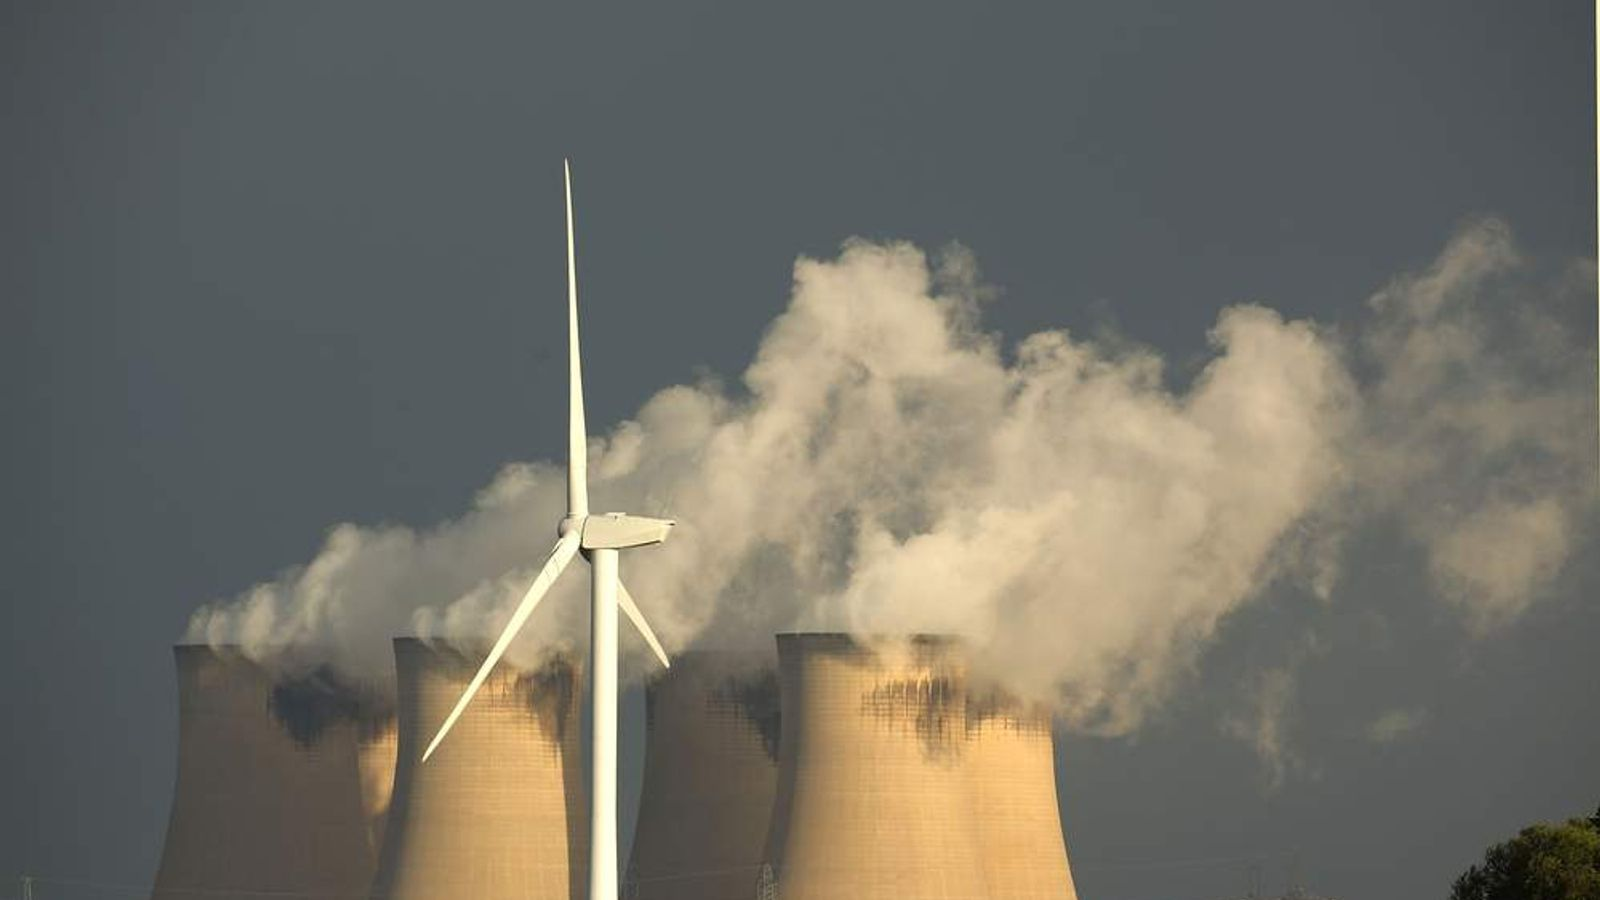 Wind turbine by Drax power station